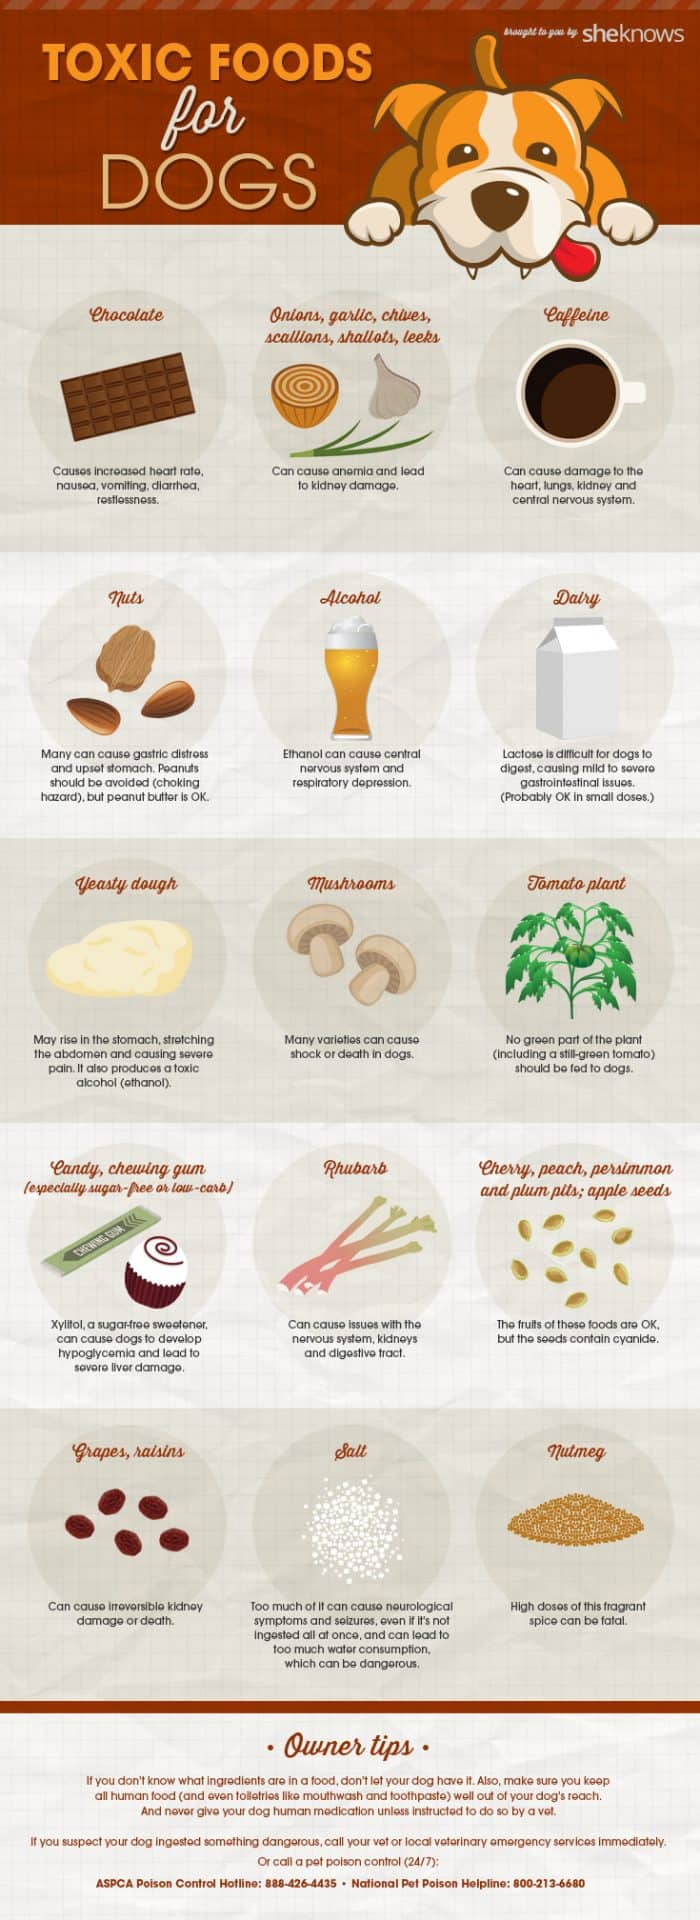 infographic listing 15 foods that are toxic for dogs